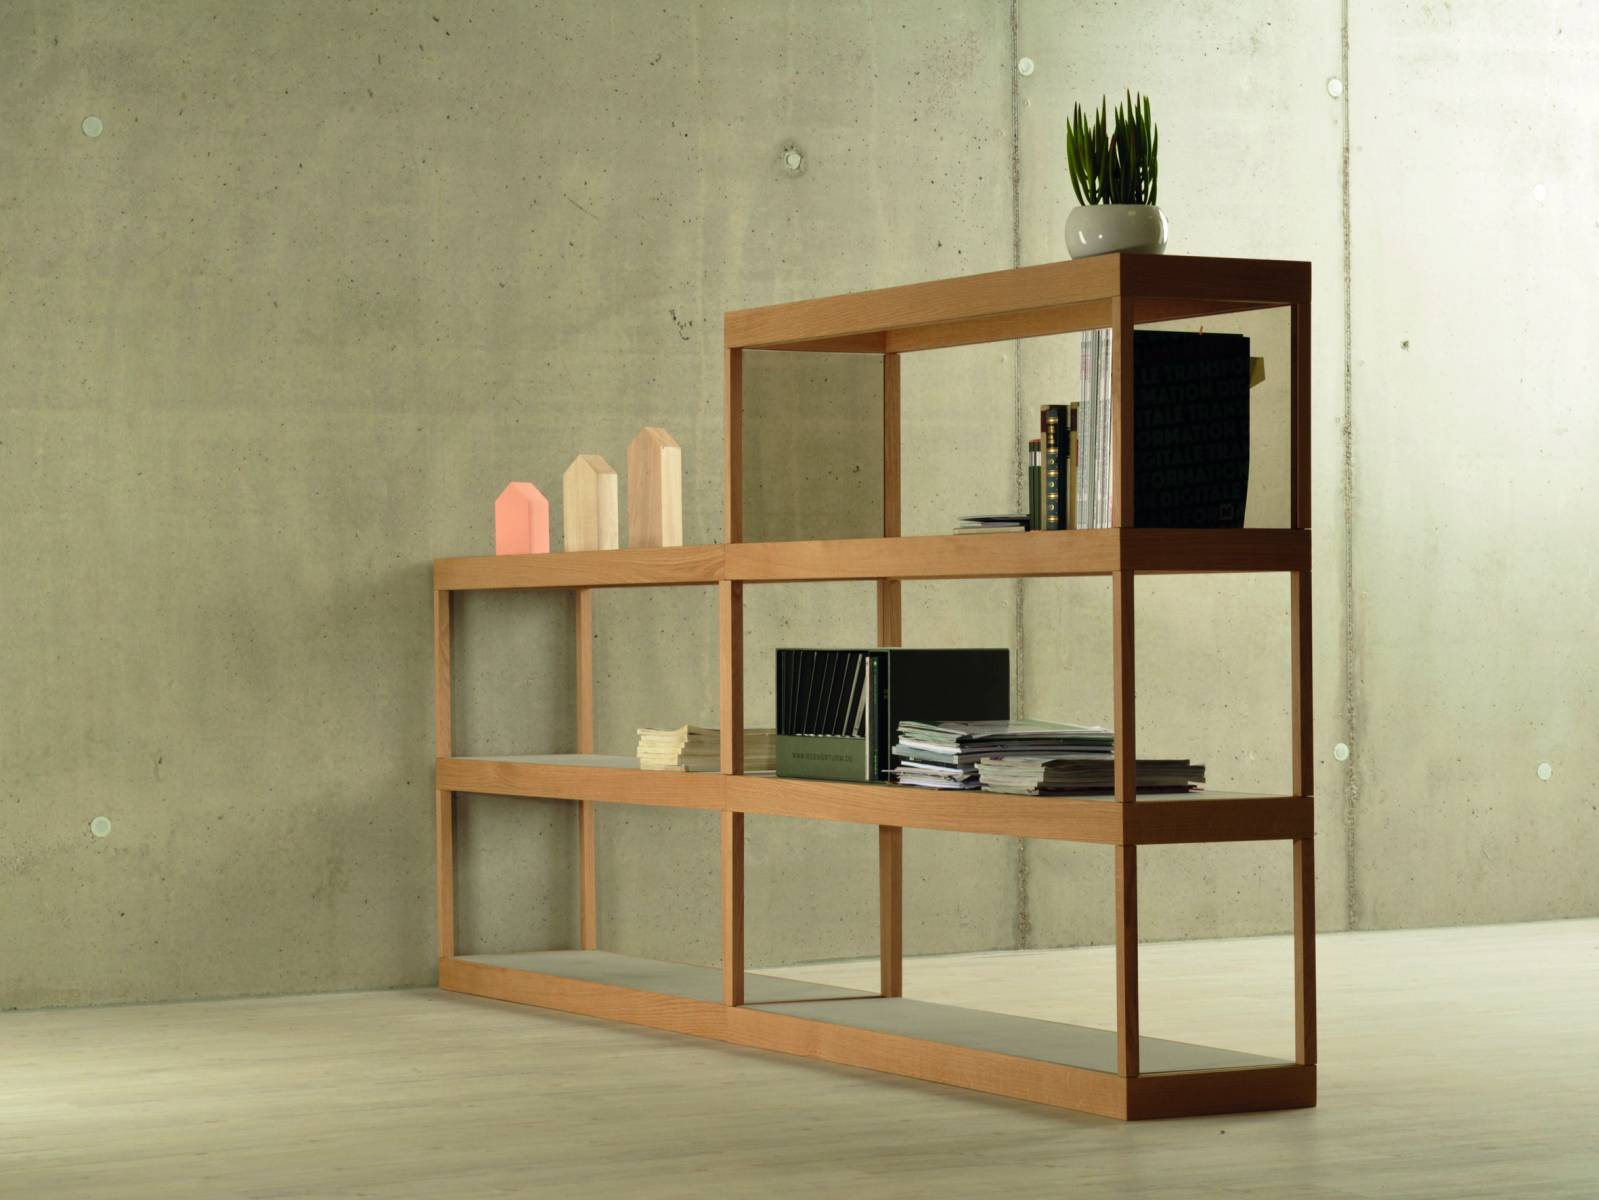 Philipp Beisheim sf-shelf.jpg